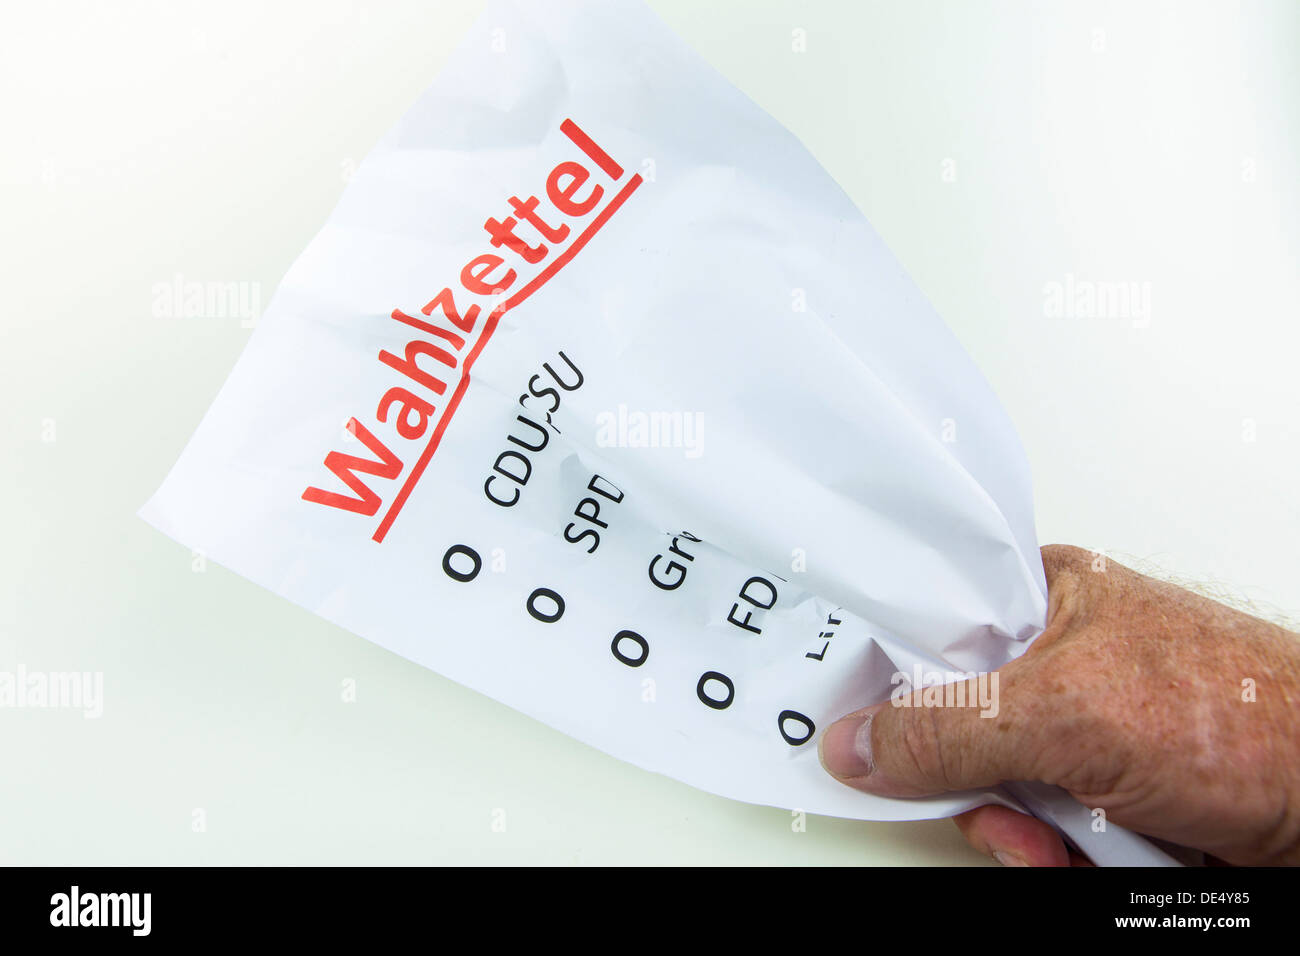 Crumpled ballot paper, symbolic image for non-voters or election frustration - Stock Image